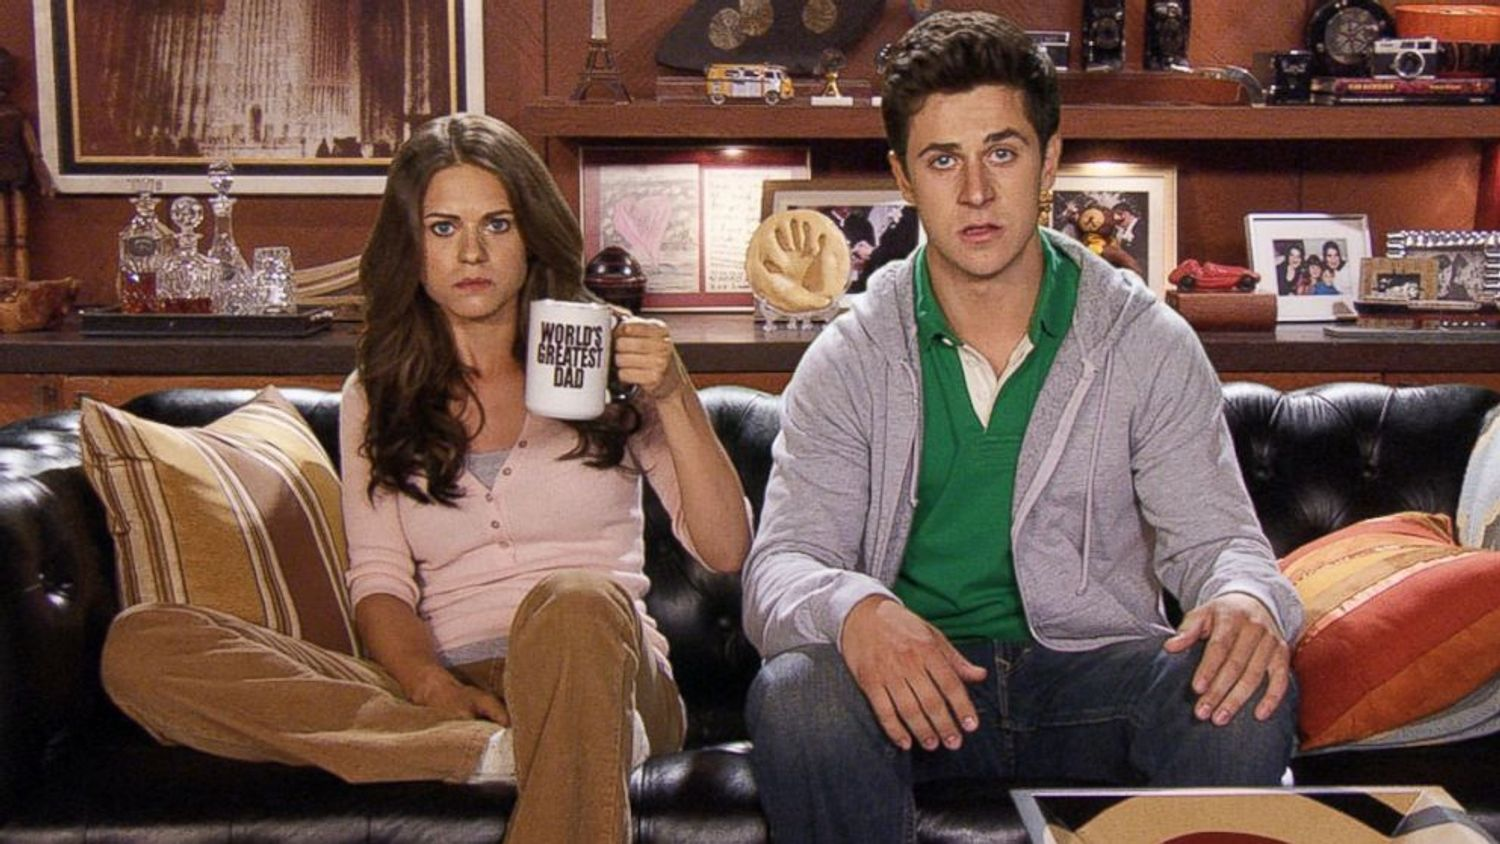 Image of man and woman on the couch staring straight in disbelief, with the woman holding a cup that says World's Greatest Dad